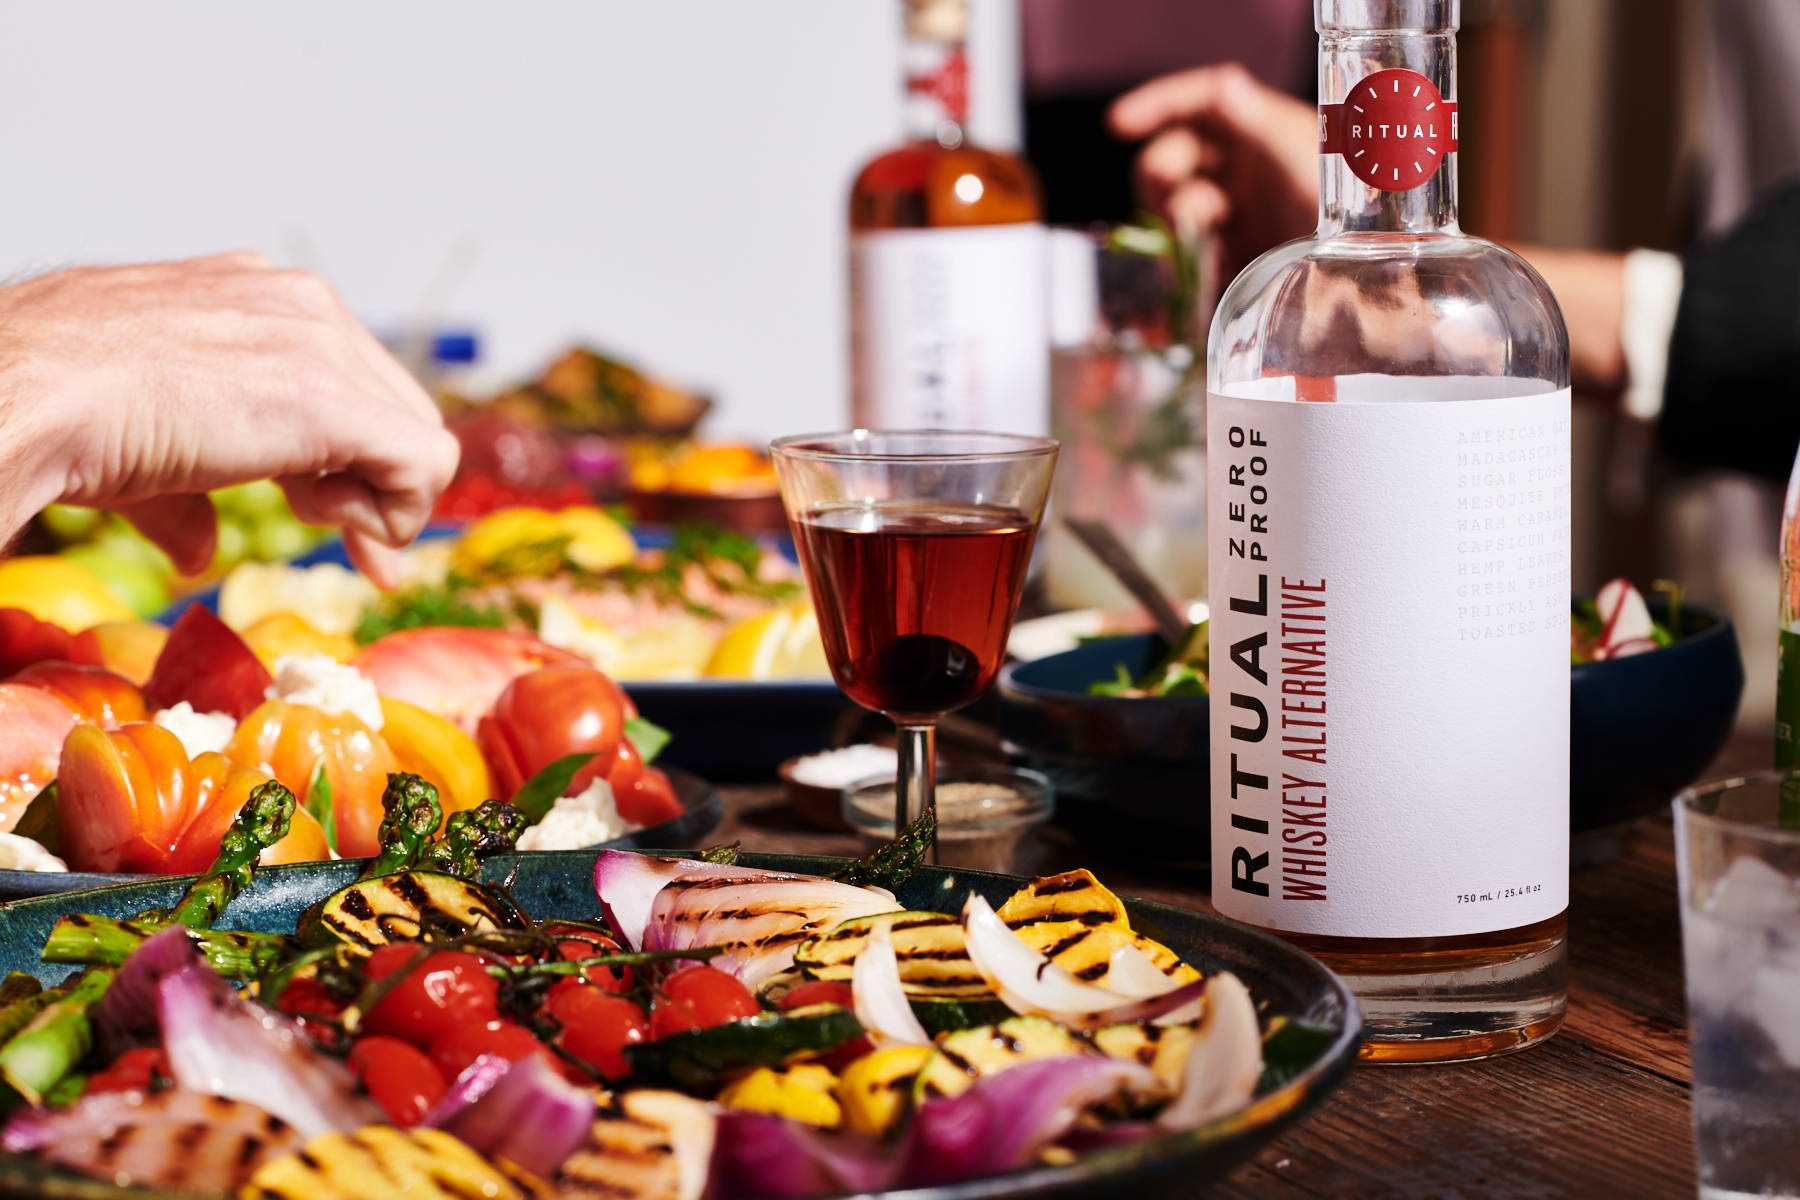 A dinner tables with vegetables, a non-alcoholic Manhattan mocktail, and a bottle of Ritual spirit-free whiskey.